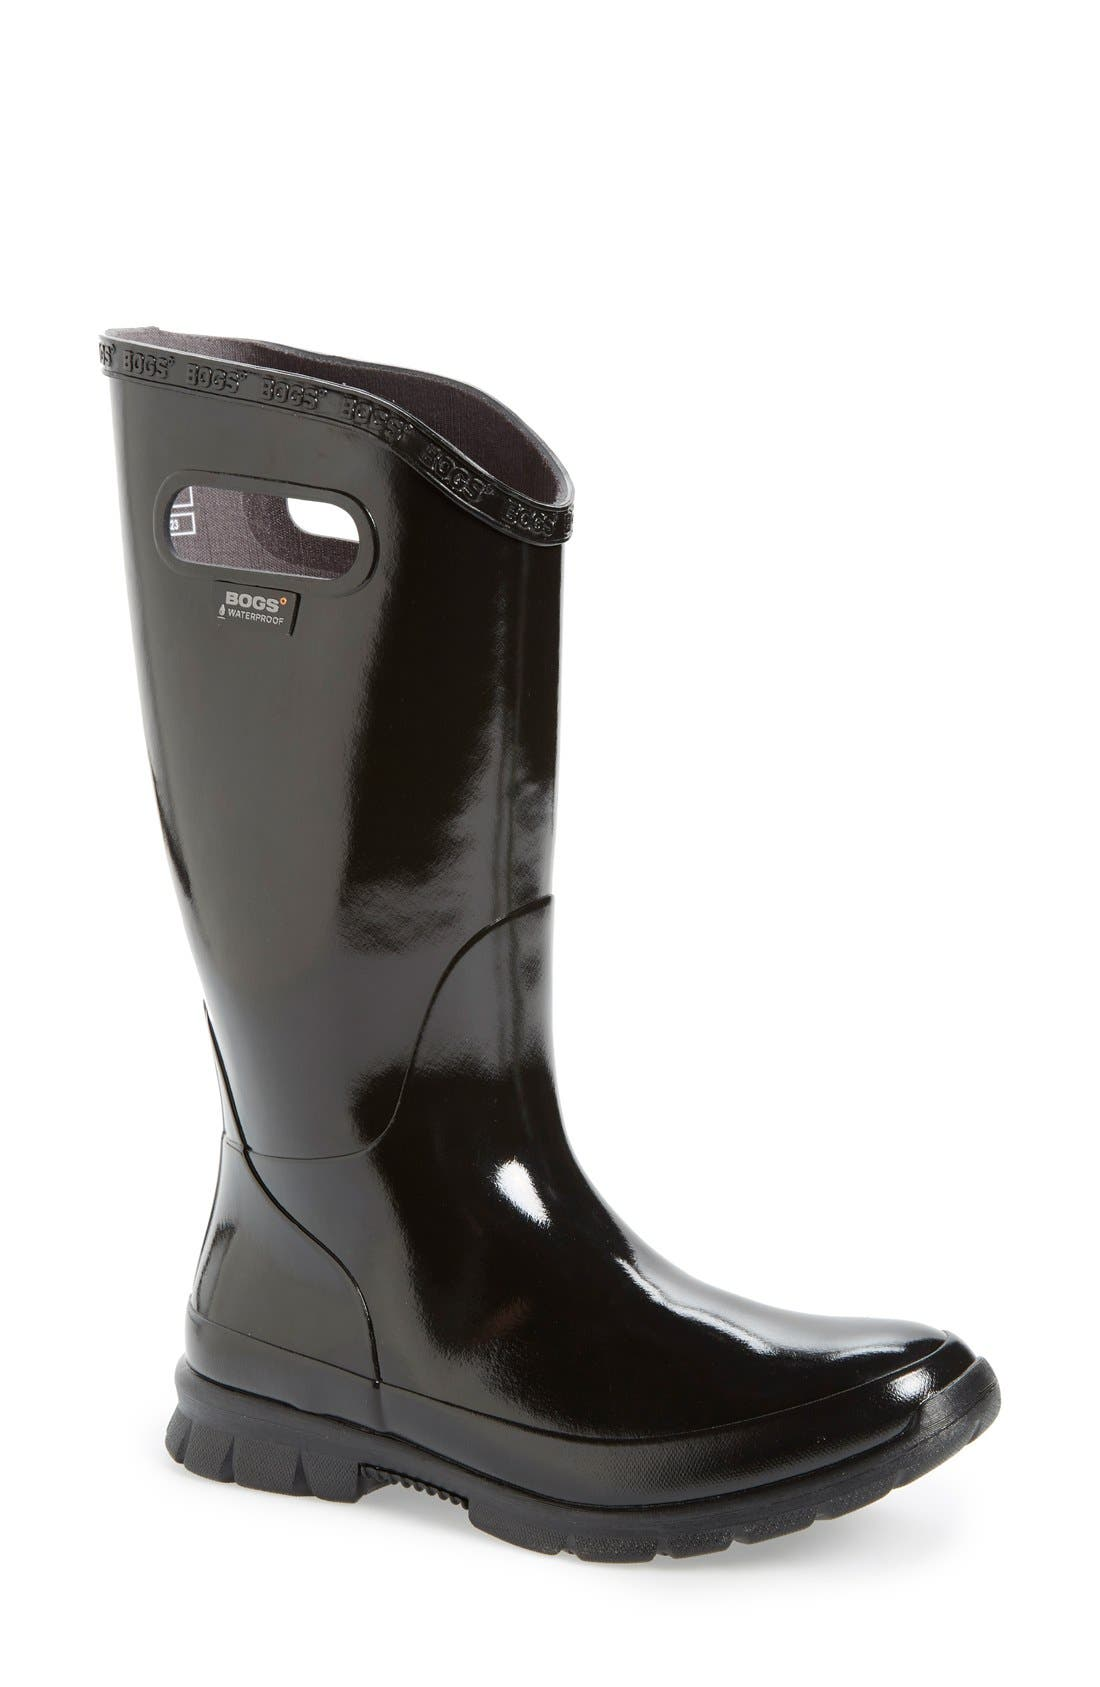 BOGS Berkley Waterproof Rain Boot